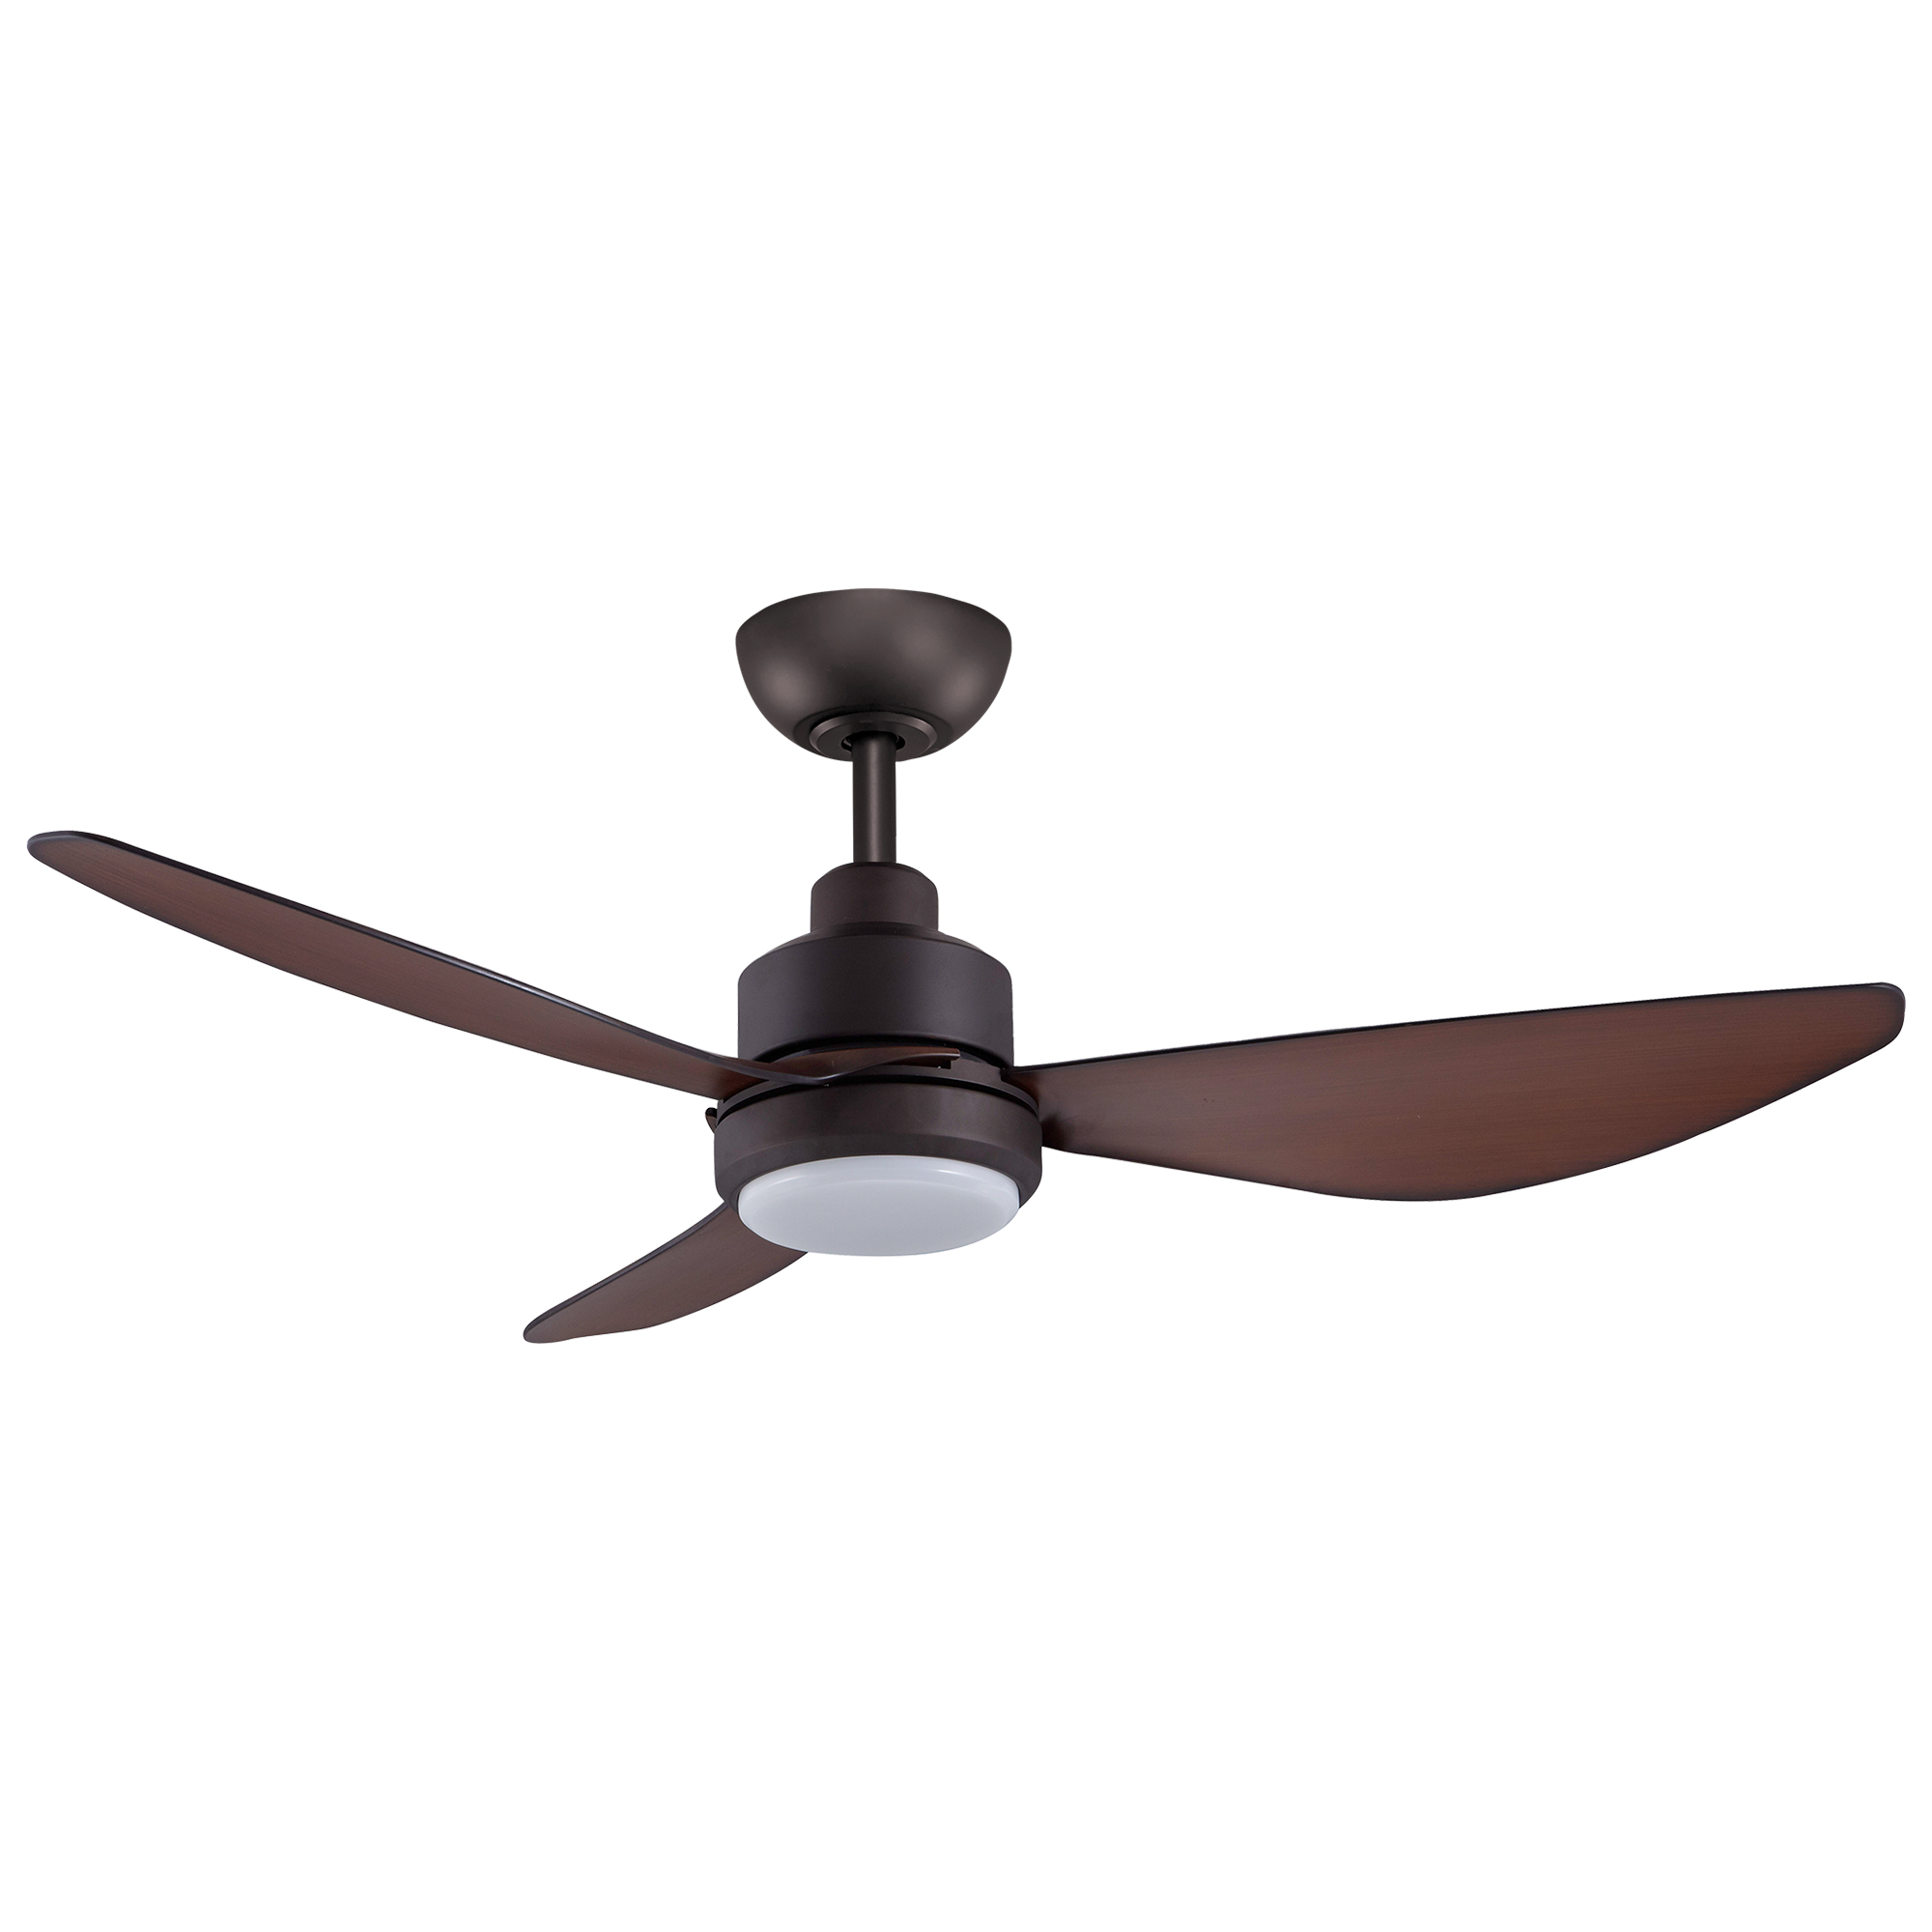 """48"""" Trinity DC Ceiling Fan in Oil-rubbed Bronze with Koa blades and 20W LED Light"""